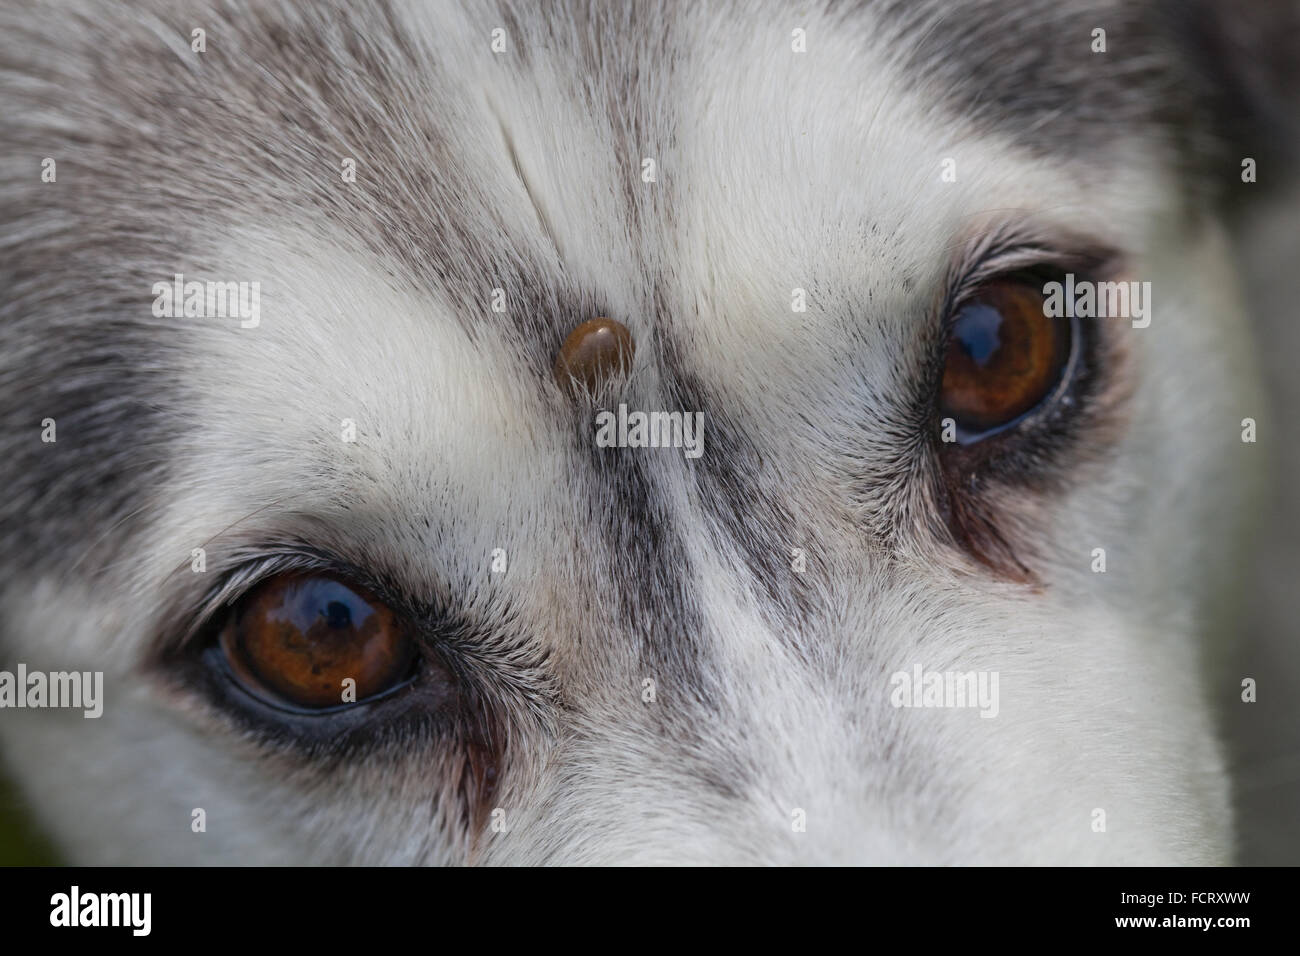 Siberian Husky. Dog. Canis lupus familiaris.  Forehead. Note tick, Ixodes ricinus, embedded on forehead between - Stock Image